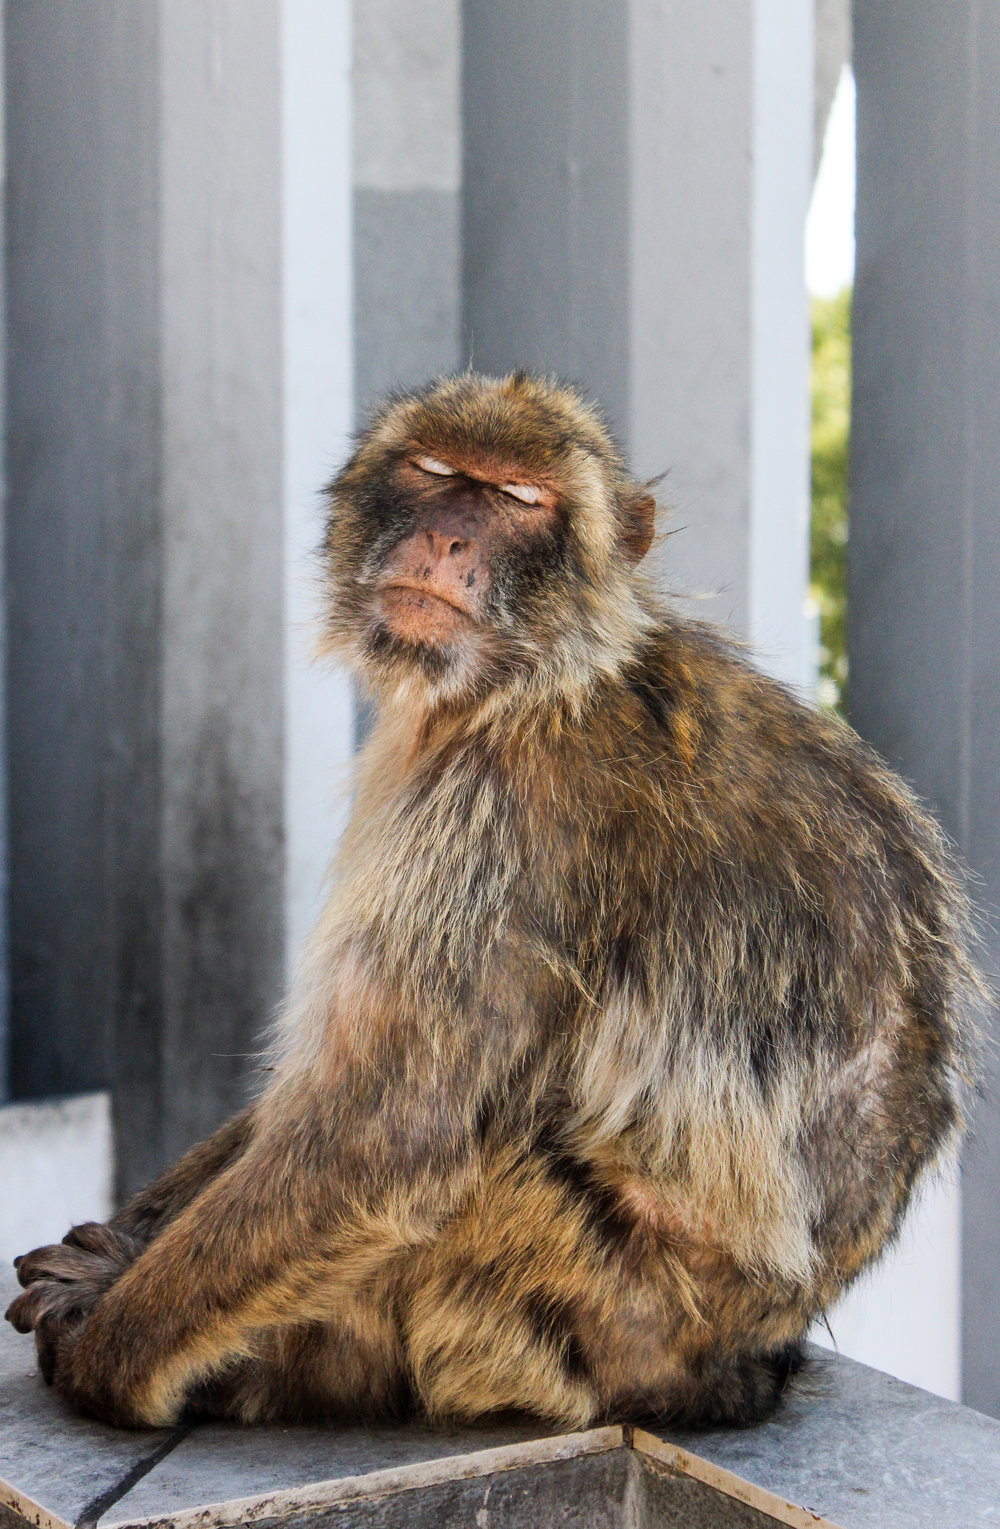 Barbary macaque, Apes' Den, Upper Rock Nature Reserve, Gibraltar, British Overseas Territory, Europe | www.DoLessGetMoreDone.com |